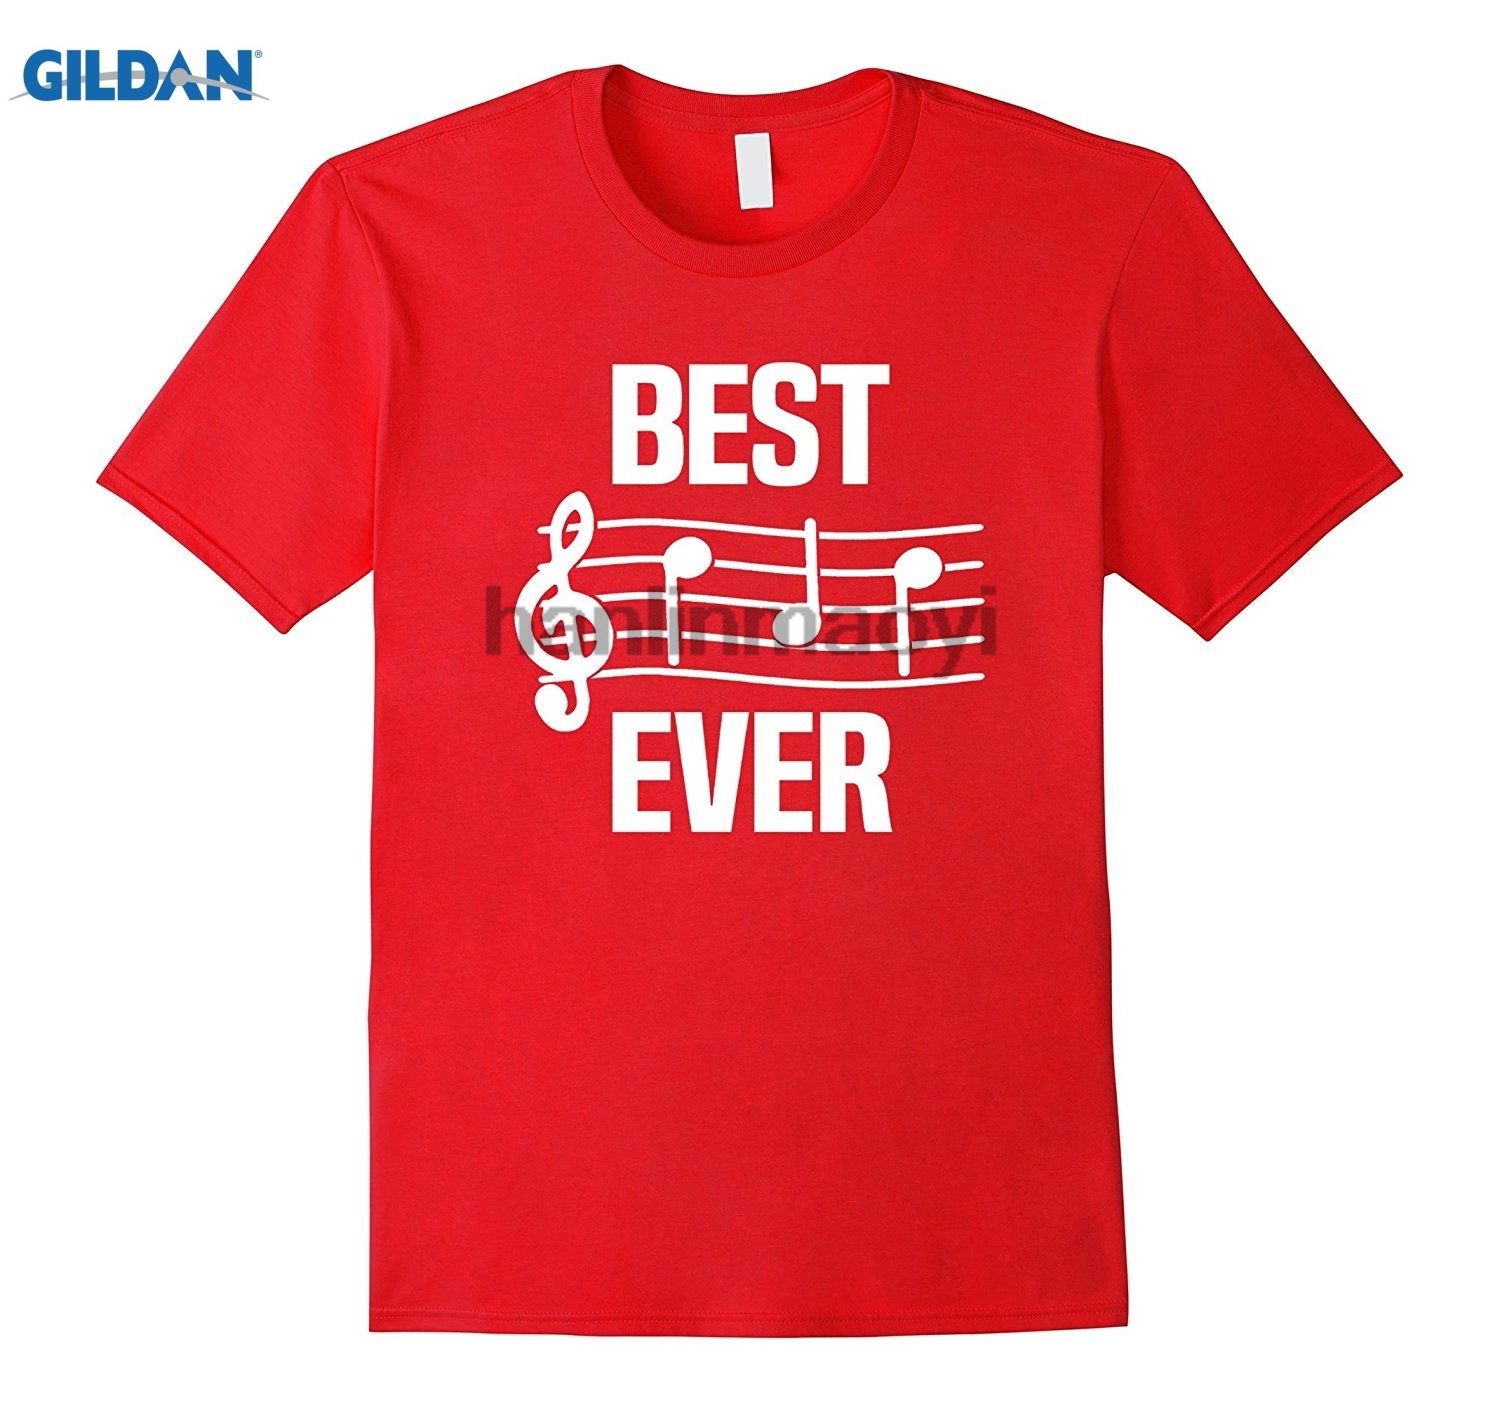 GILDAN Mens Best Dad Ever Music TShirt Notes Funny Fathers Day Gift